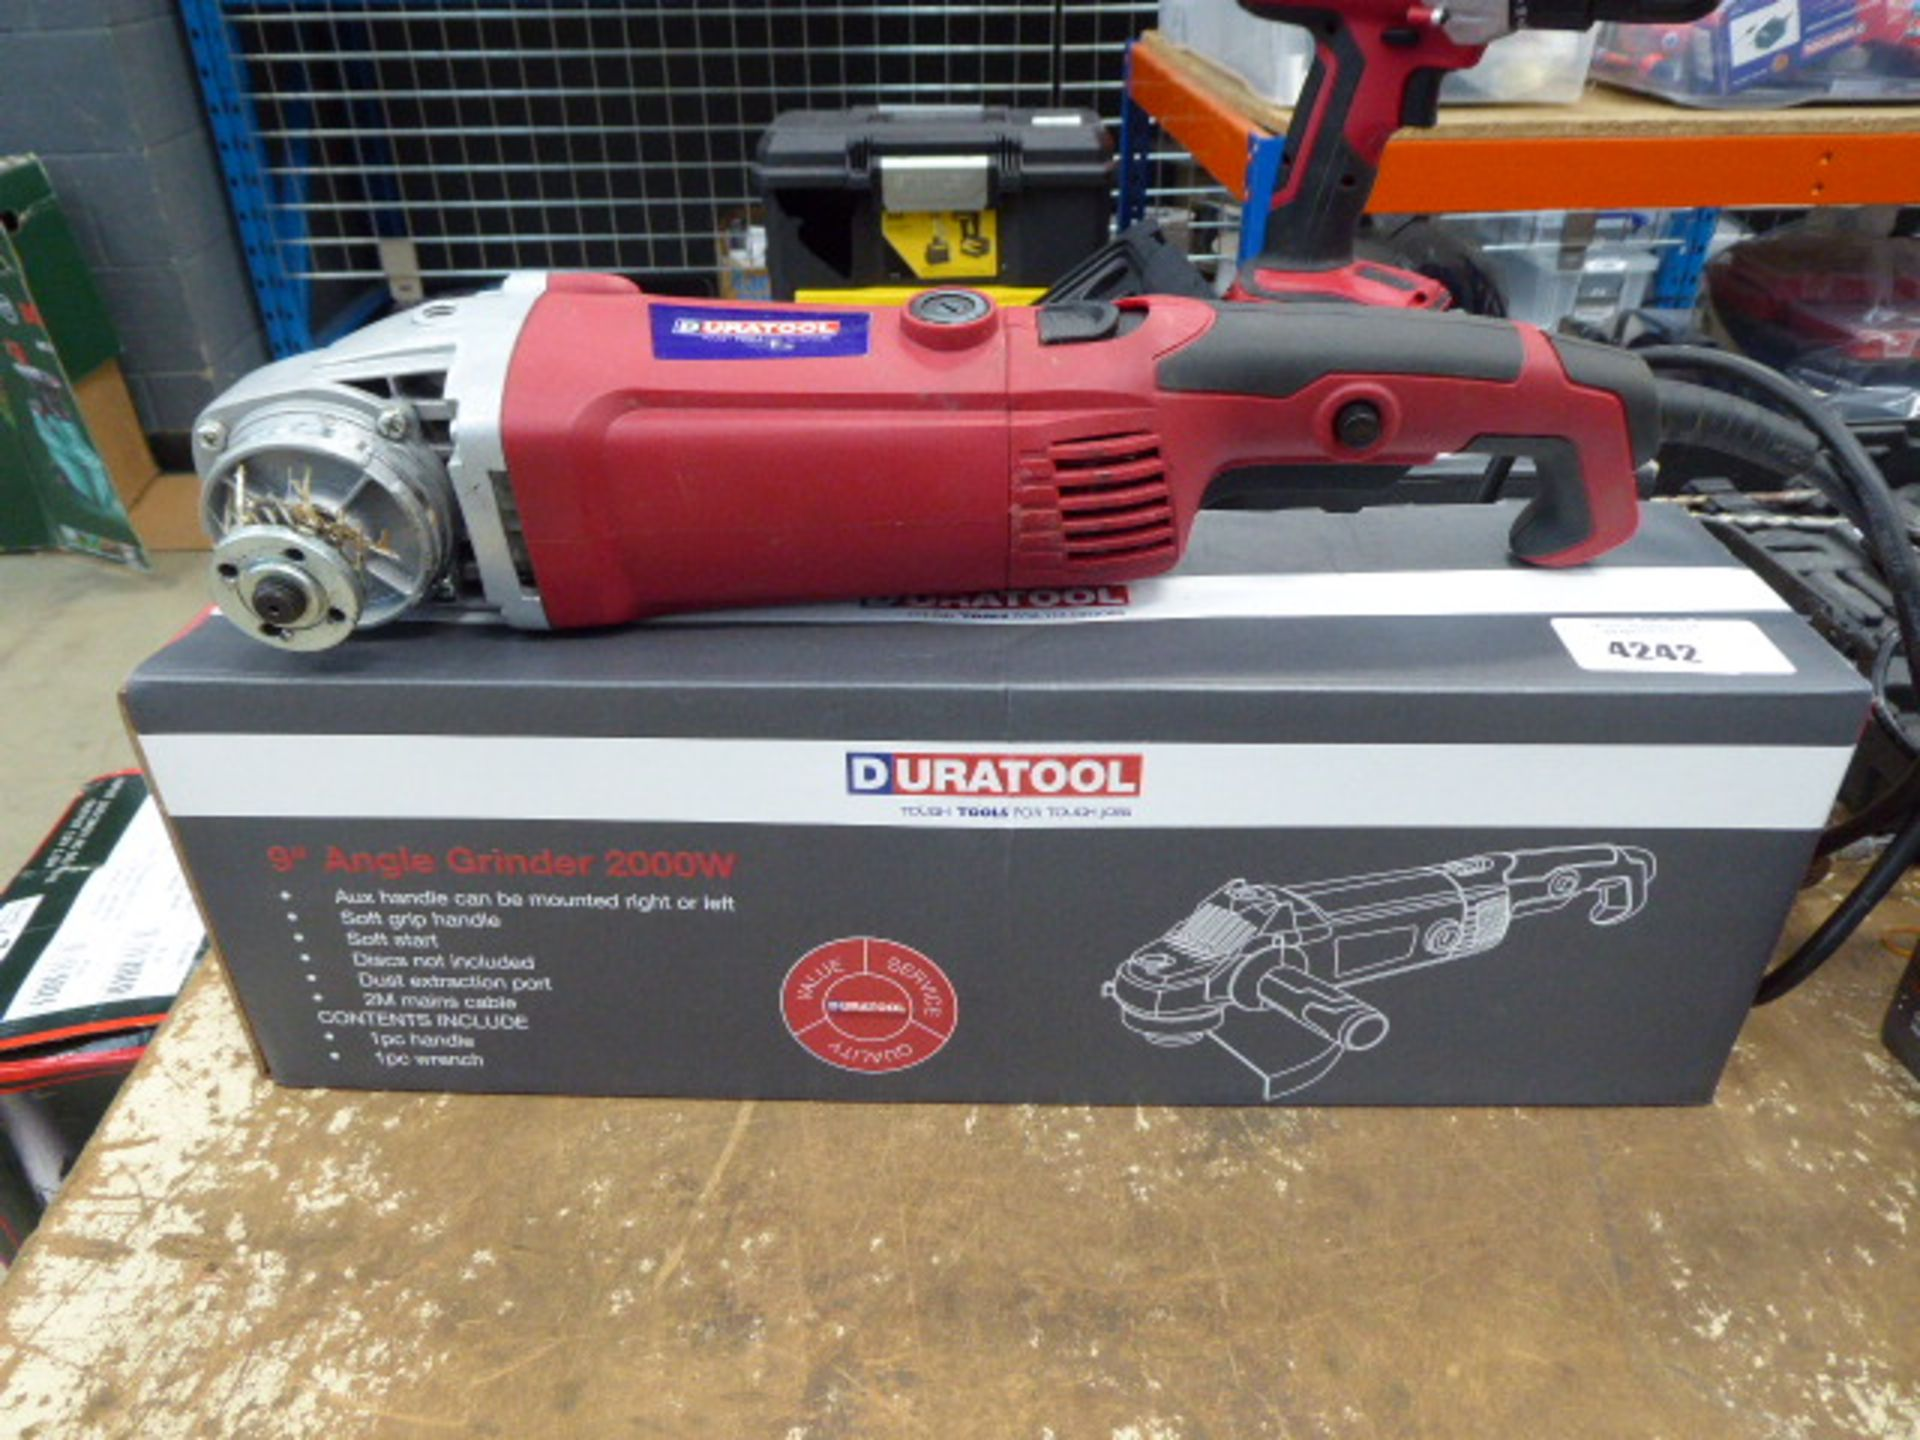 Boxed 9'' angle grinder